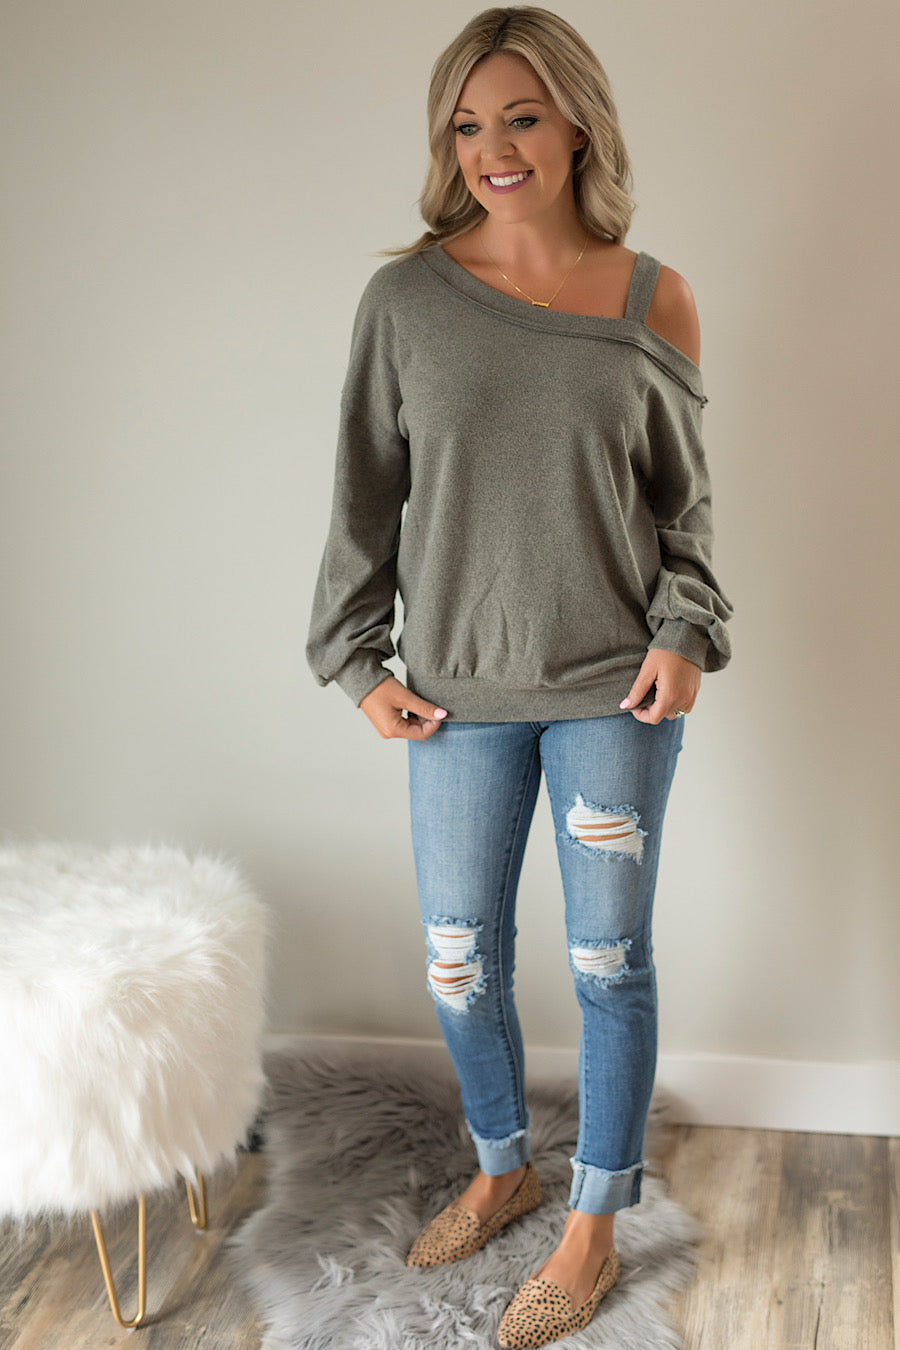 Olive a Saturday One Shoulder Top